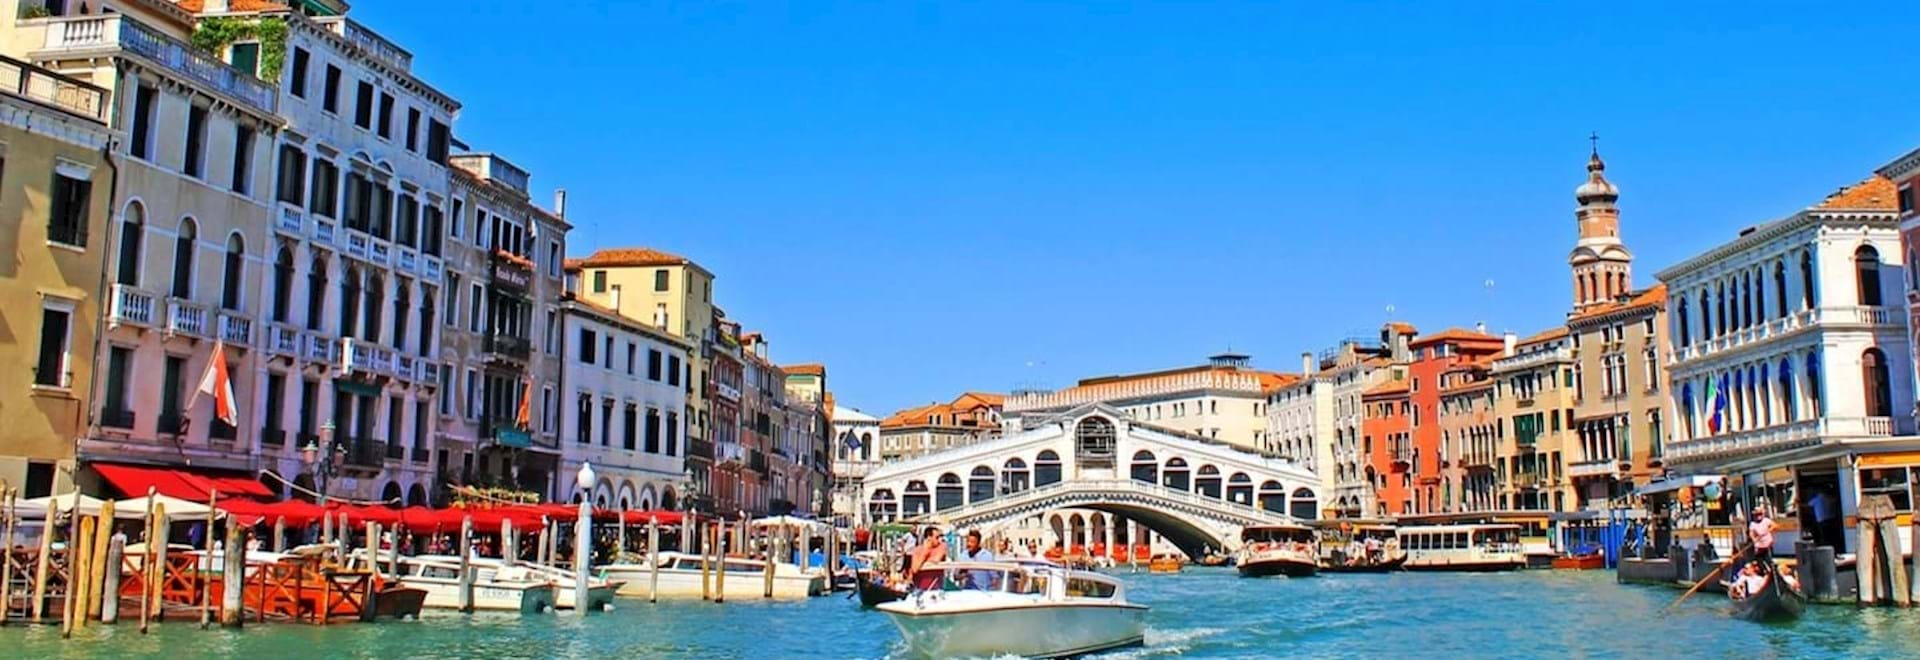 Water taxi on the Grand Canal and the Rialto Bridge at the back